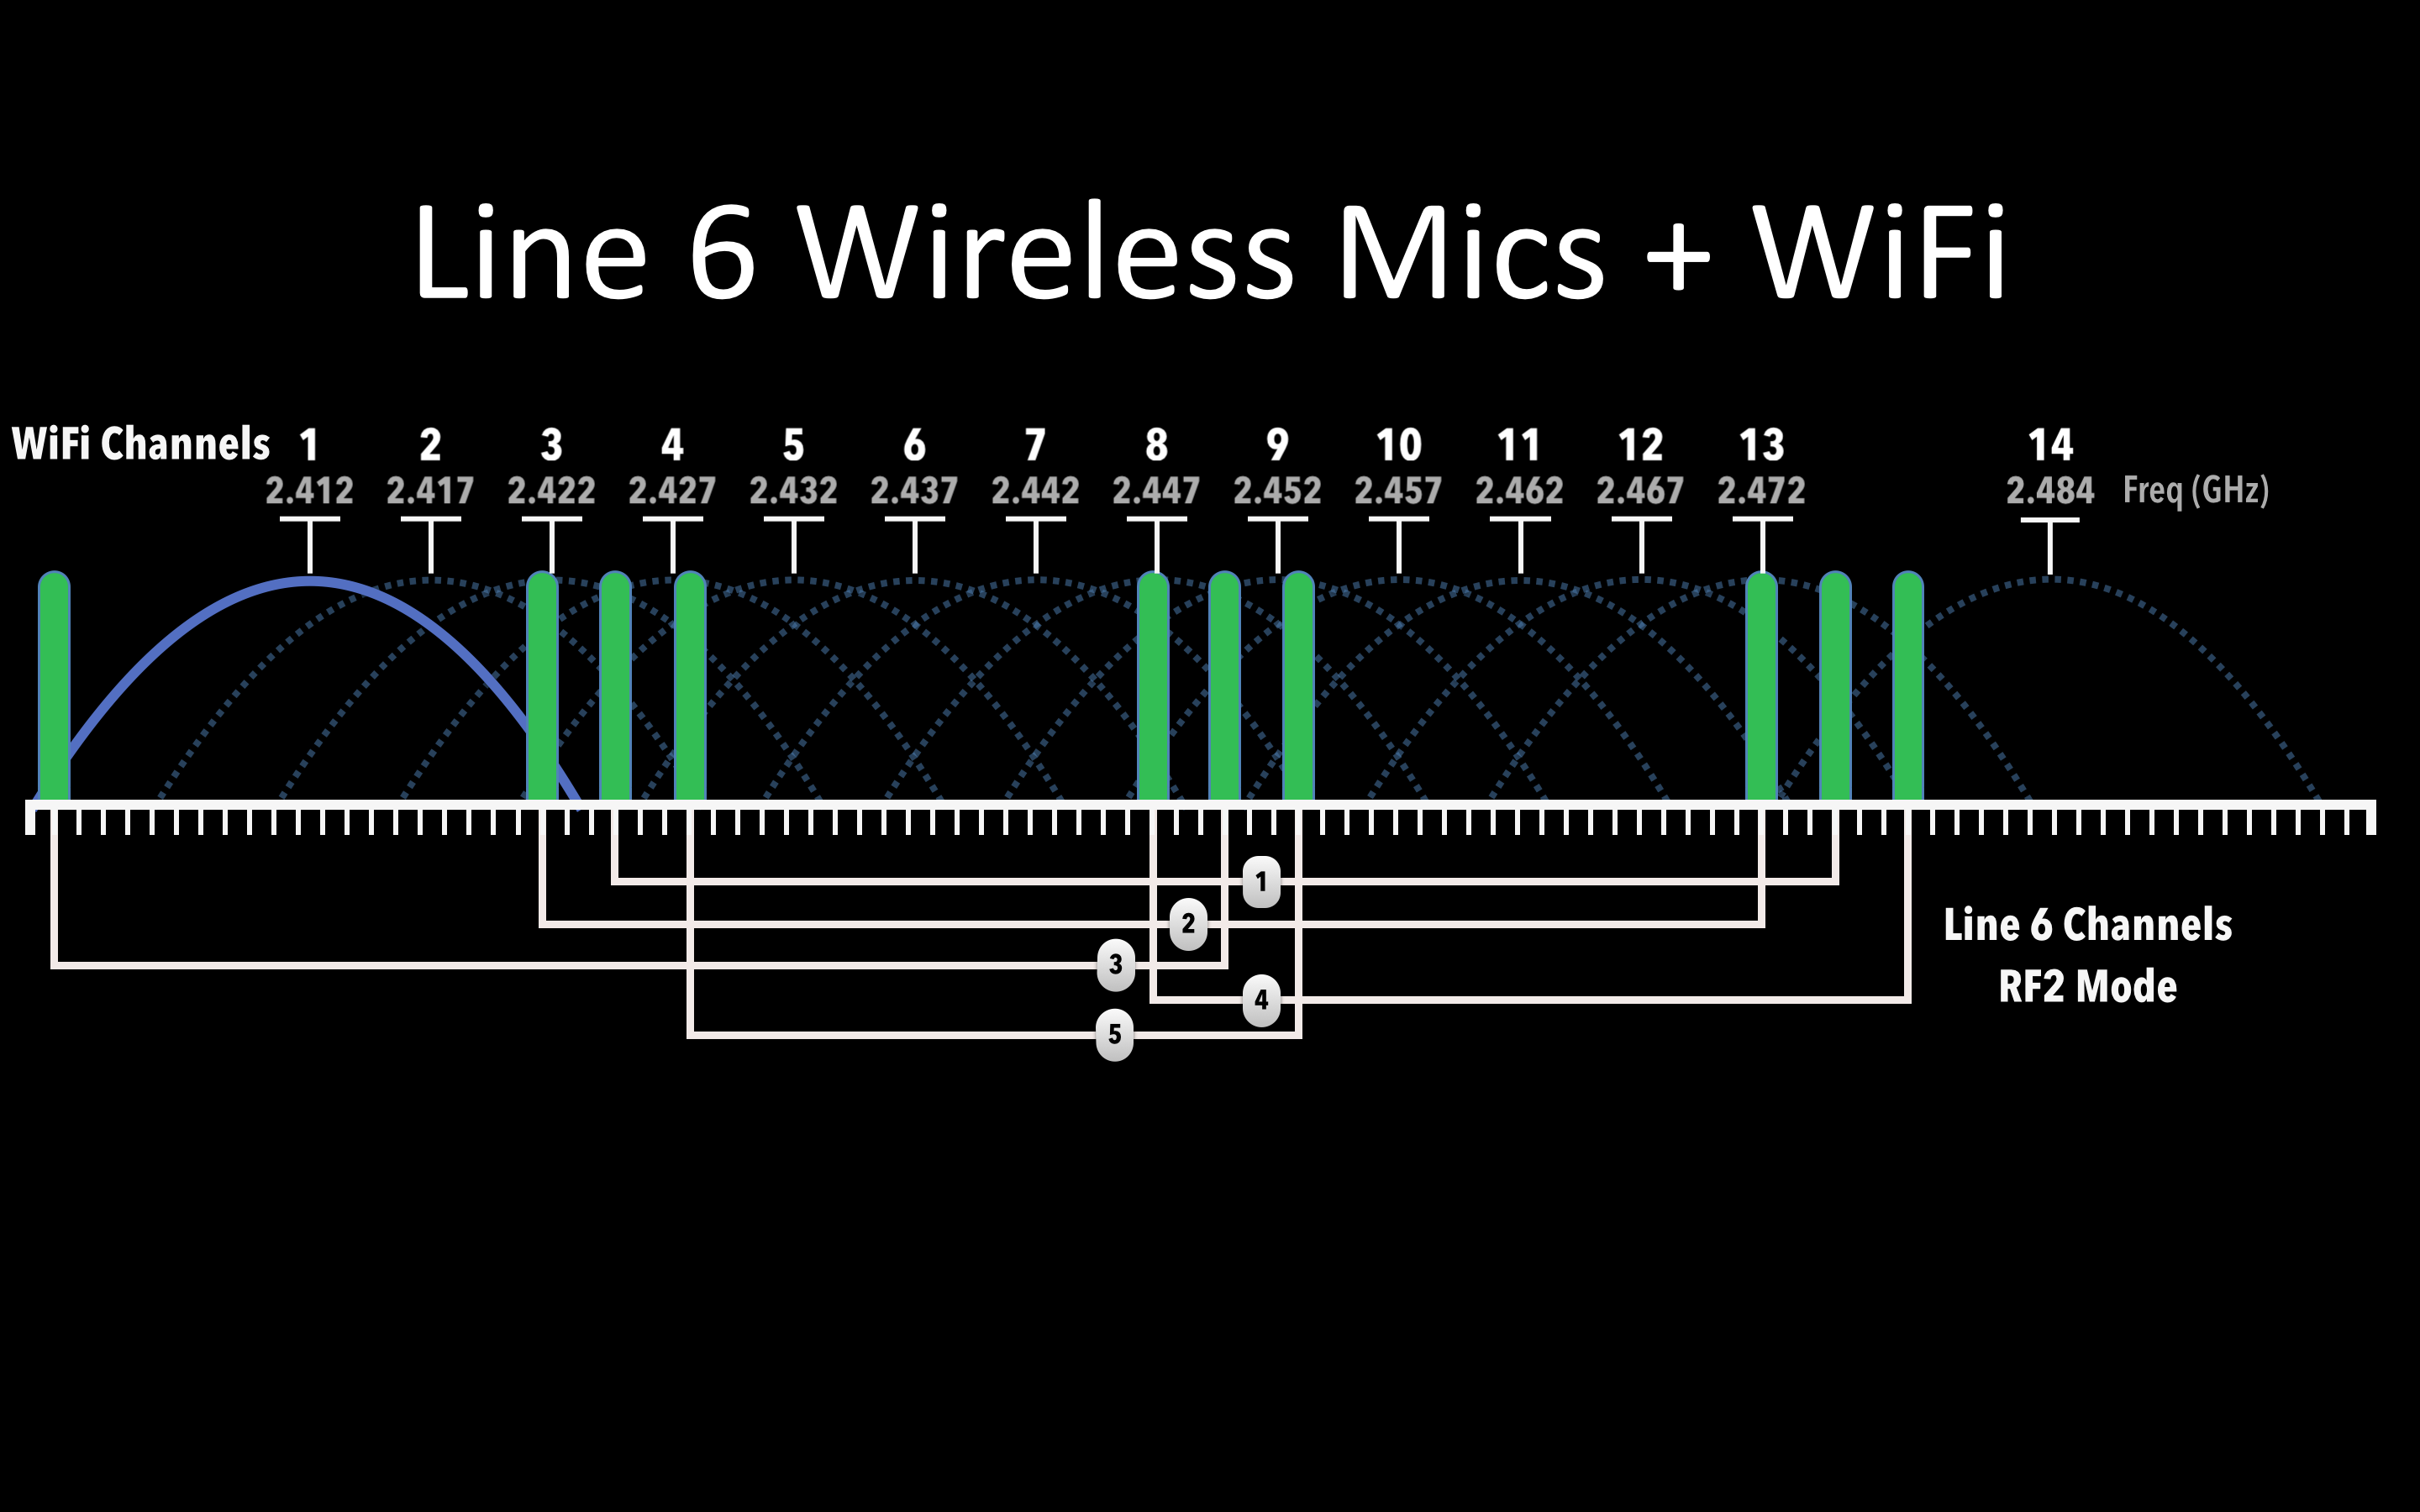 Line 6 RF2 2.4 GHz microphone frequency scheme